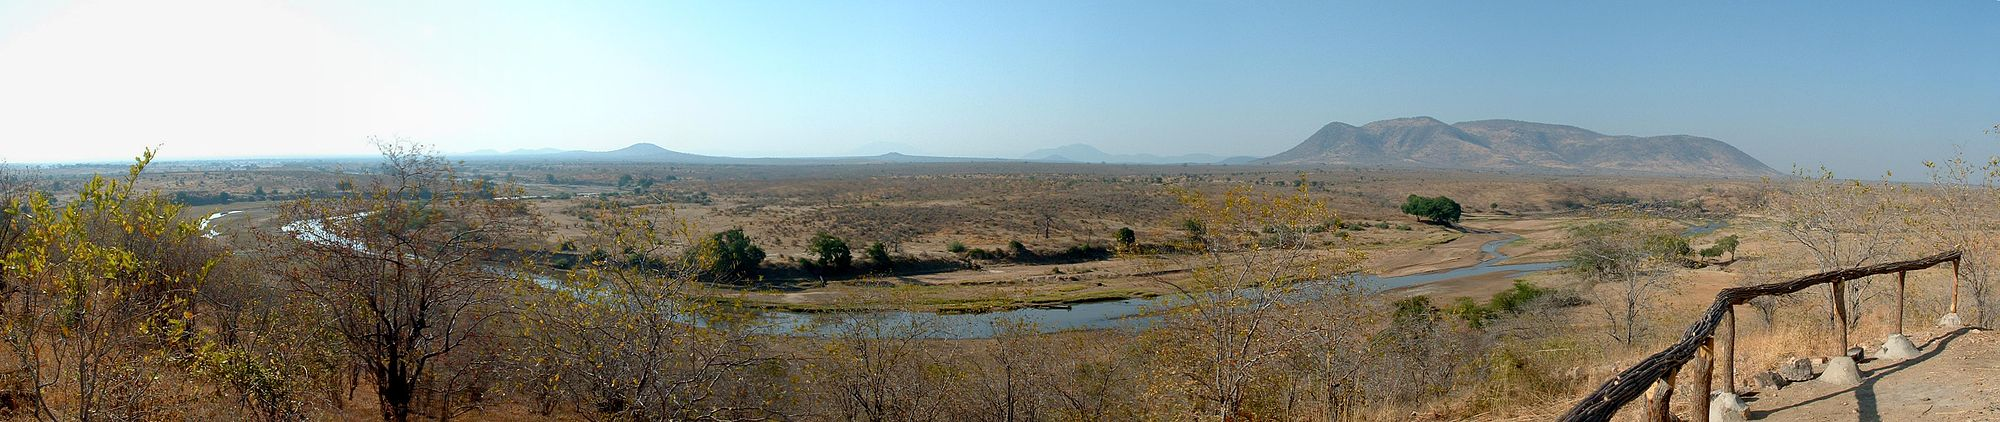 Ruaha National Park Panorama.jpg